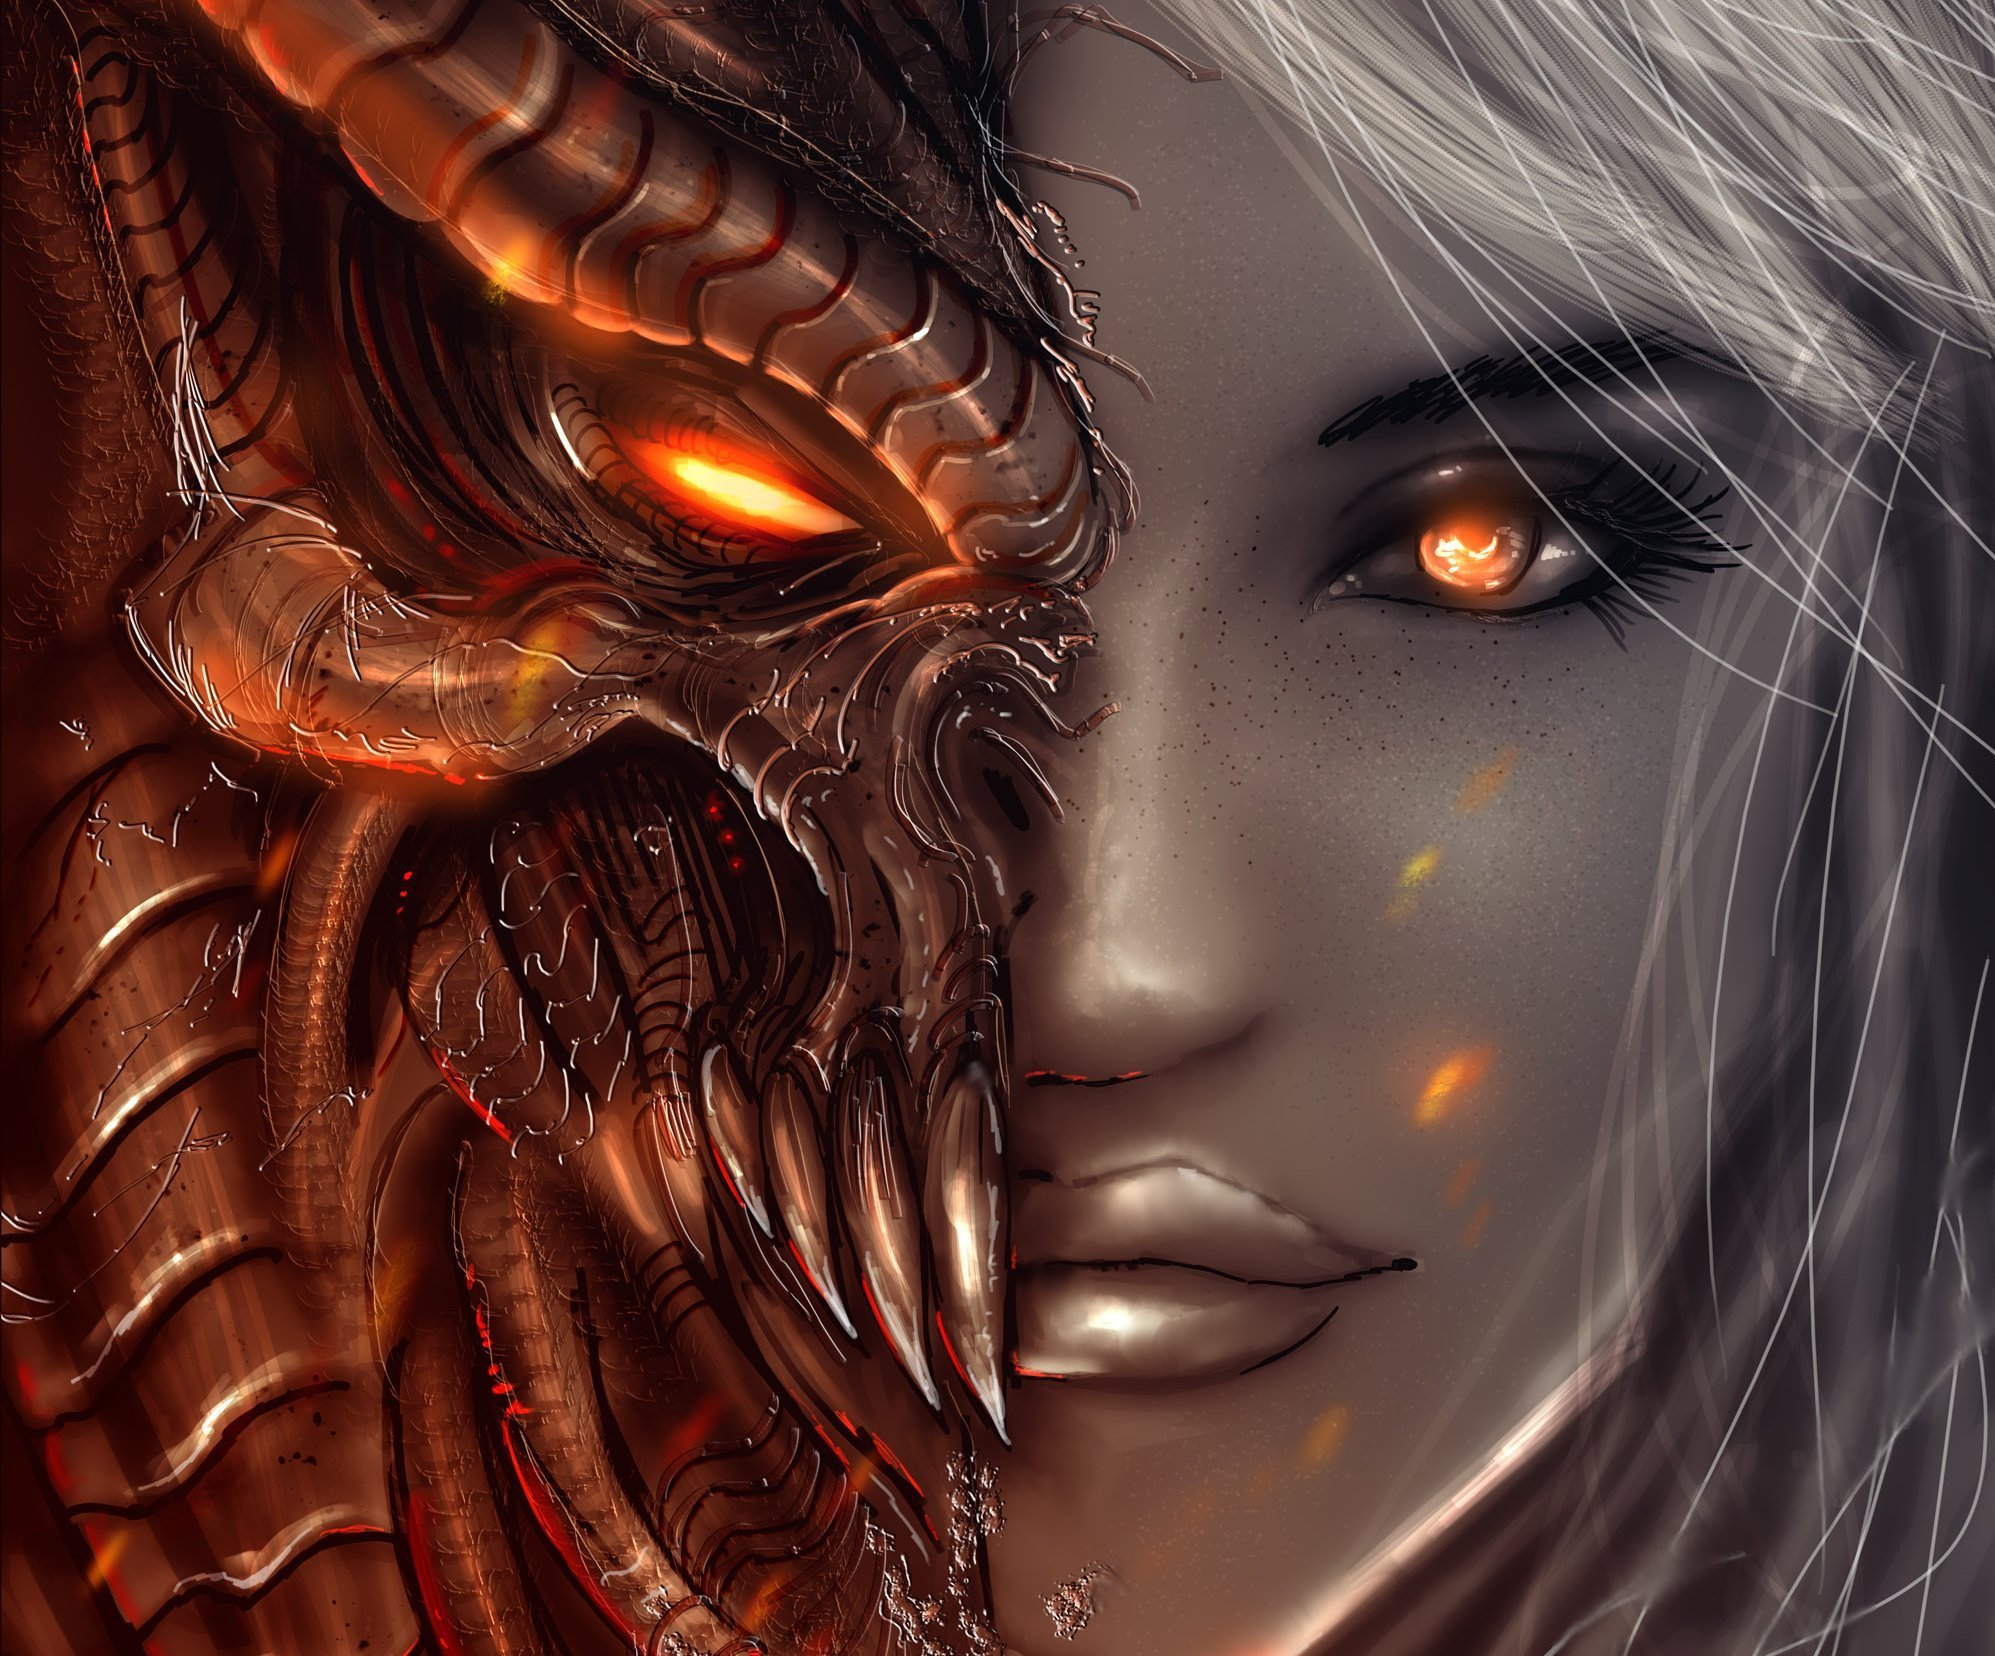 Demon hd wallpapers pictures images - Anime face wallpaper ...